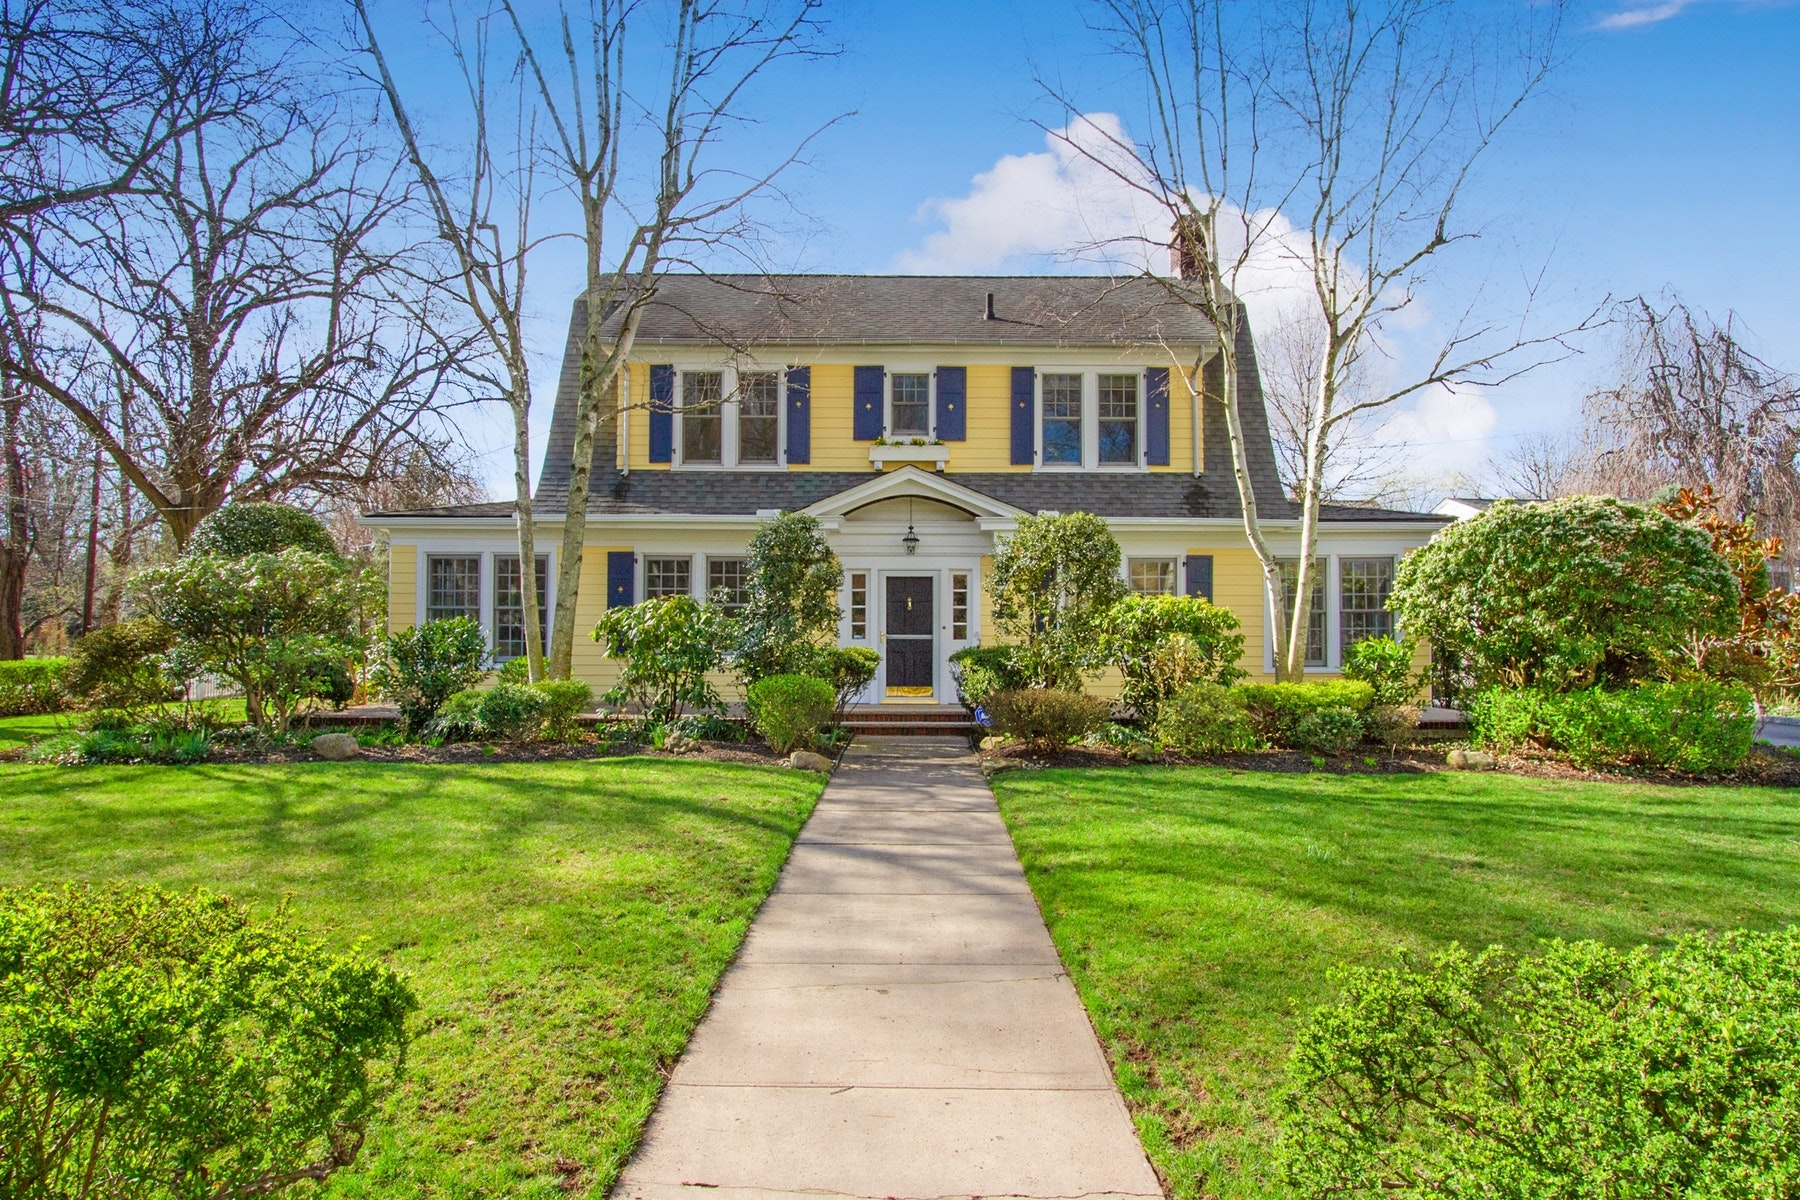 Single Family Home for Sale at Enchanting Dutch Colonial 64 Elm Ave, Metuchen, New Jersey 08840 United States